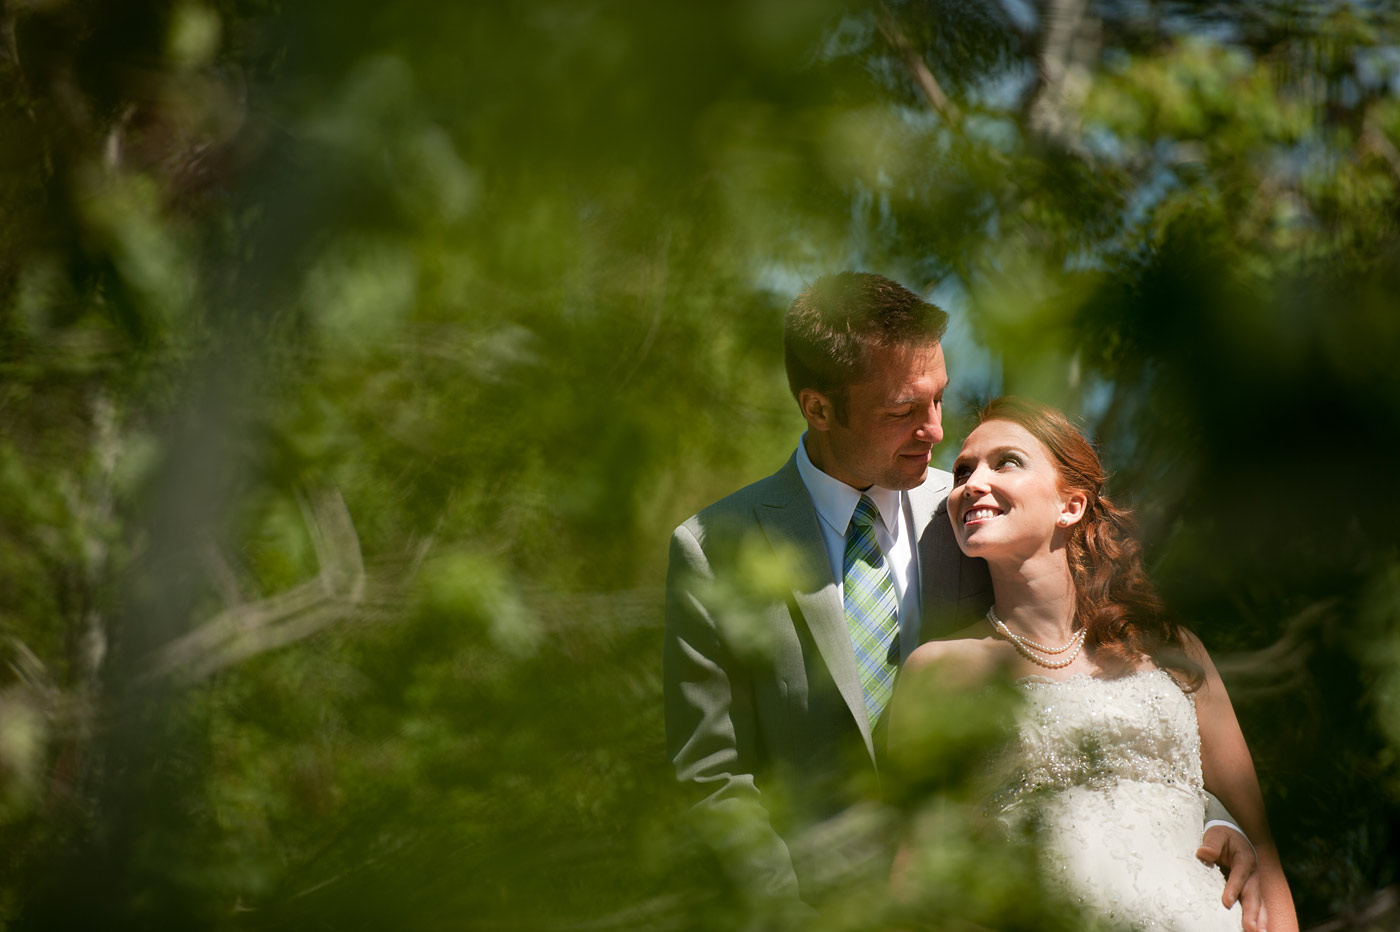 bride and groom embracing in the forest.